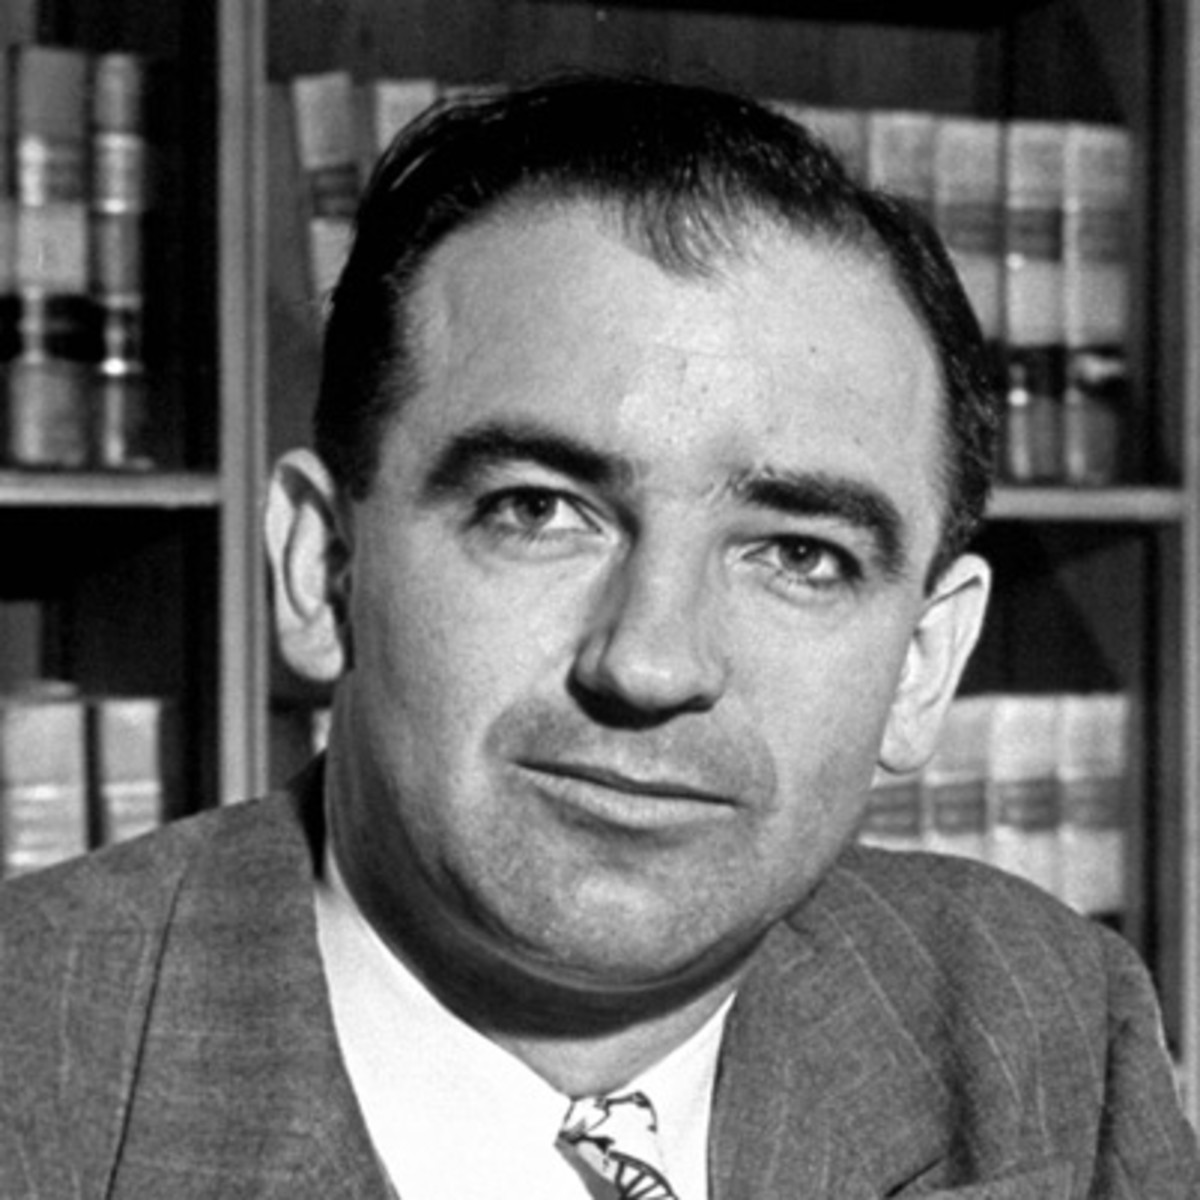 who is joseph mccarthy and what is mccarthyism